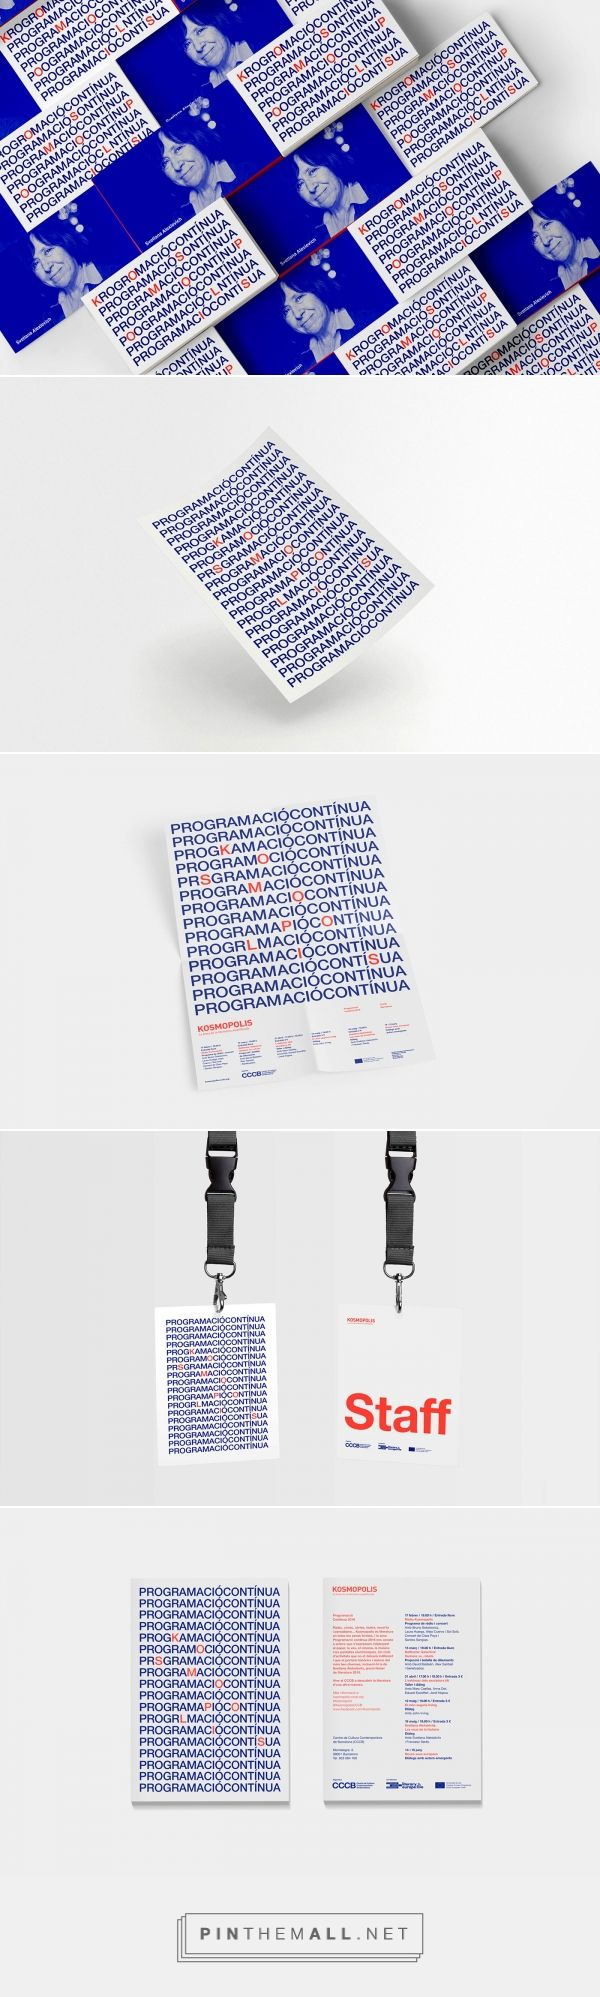 Kosmopolis on Behance... - a grouped images picture - Pin Them All